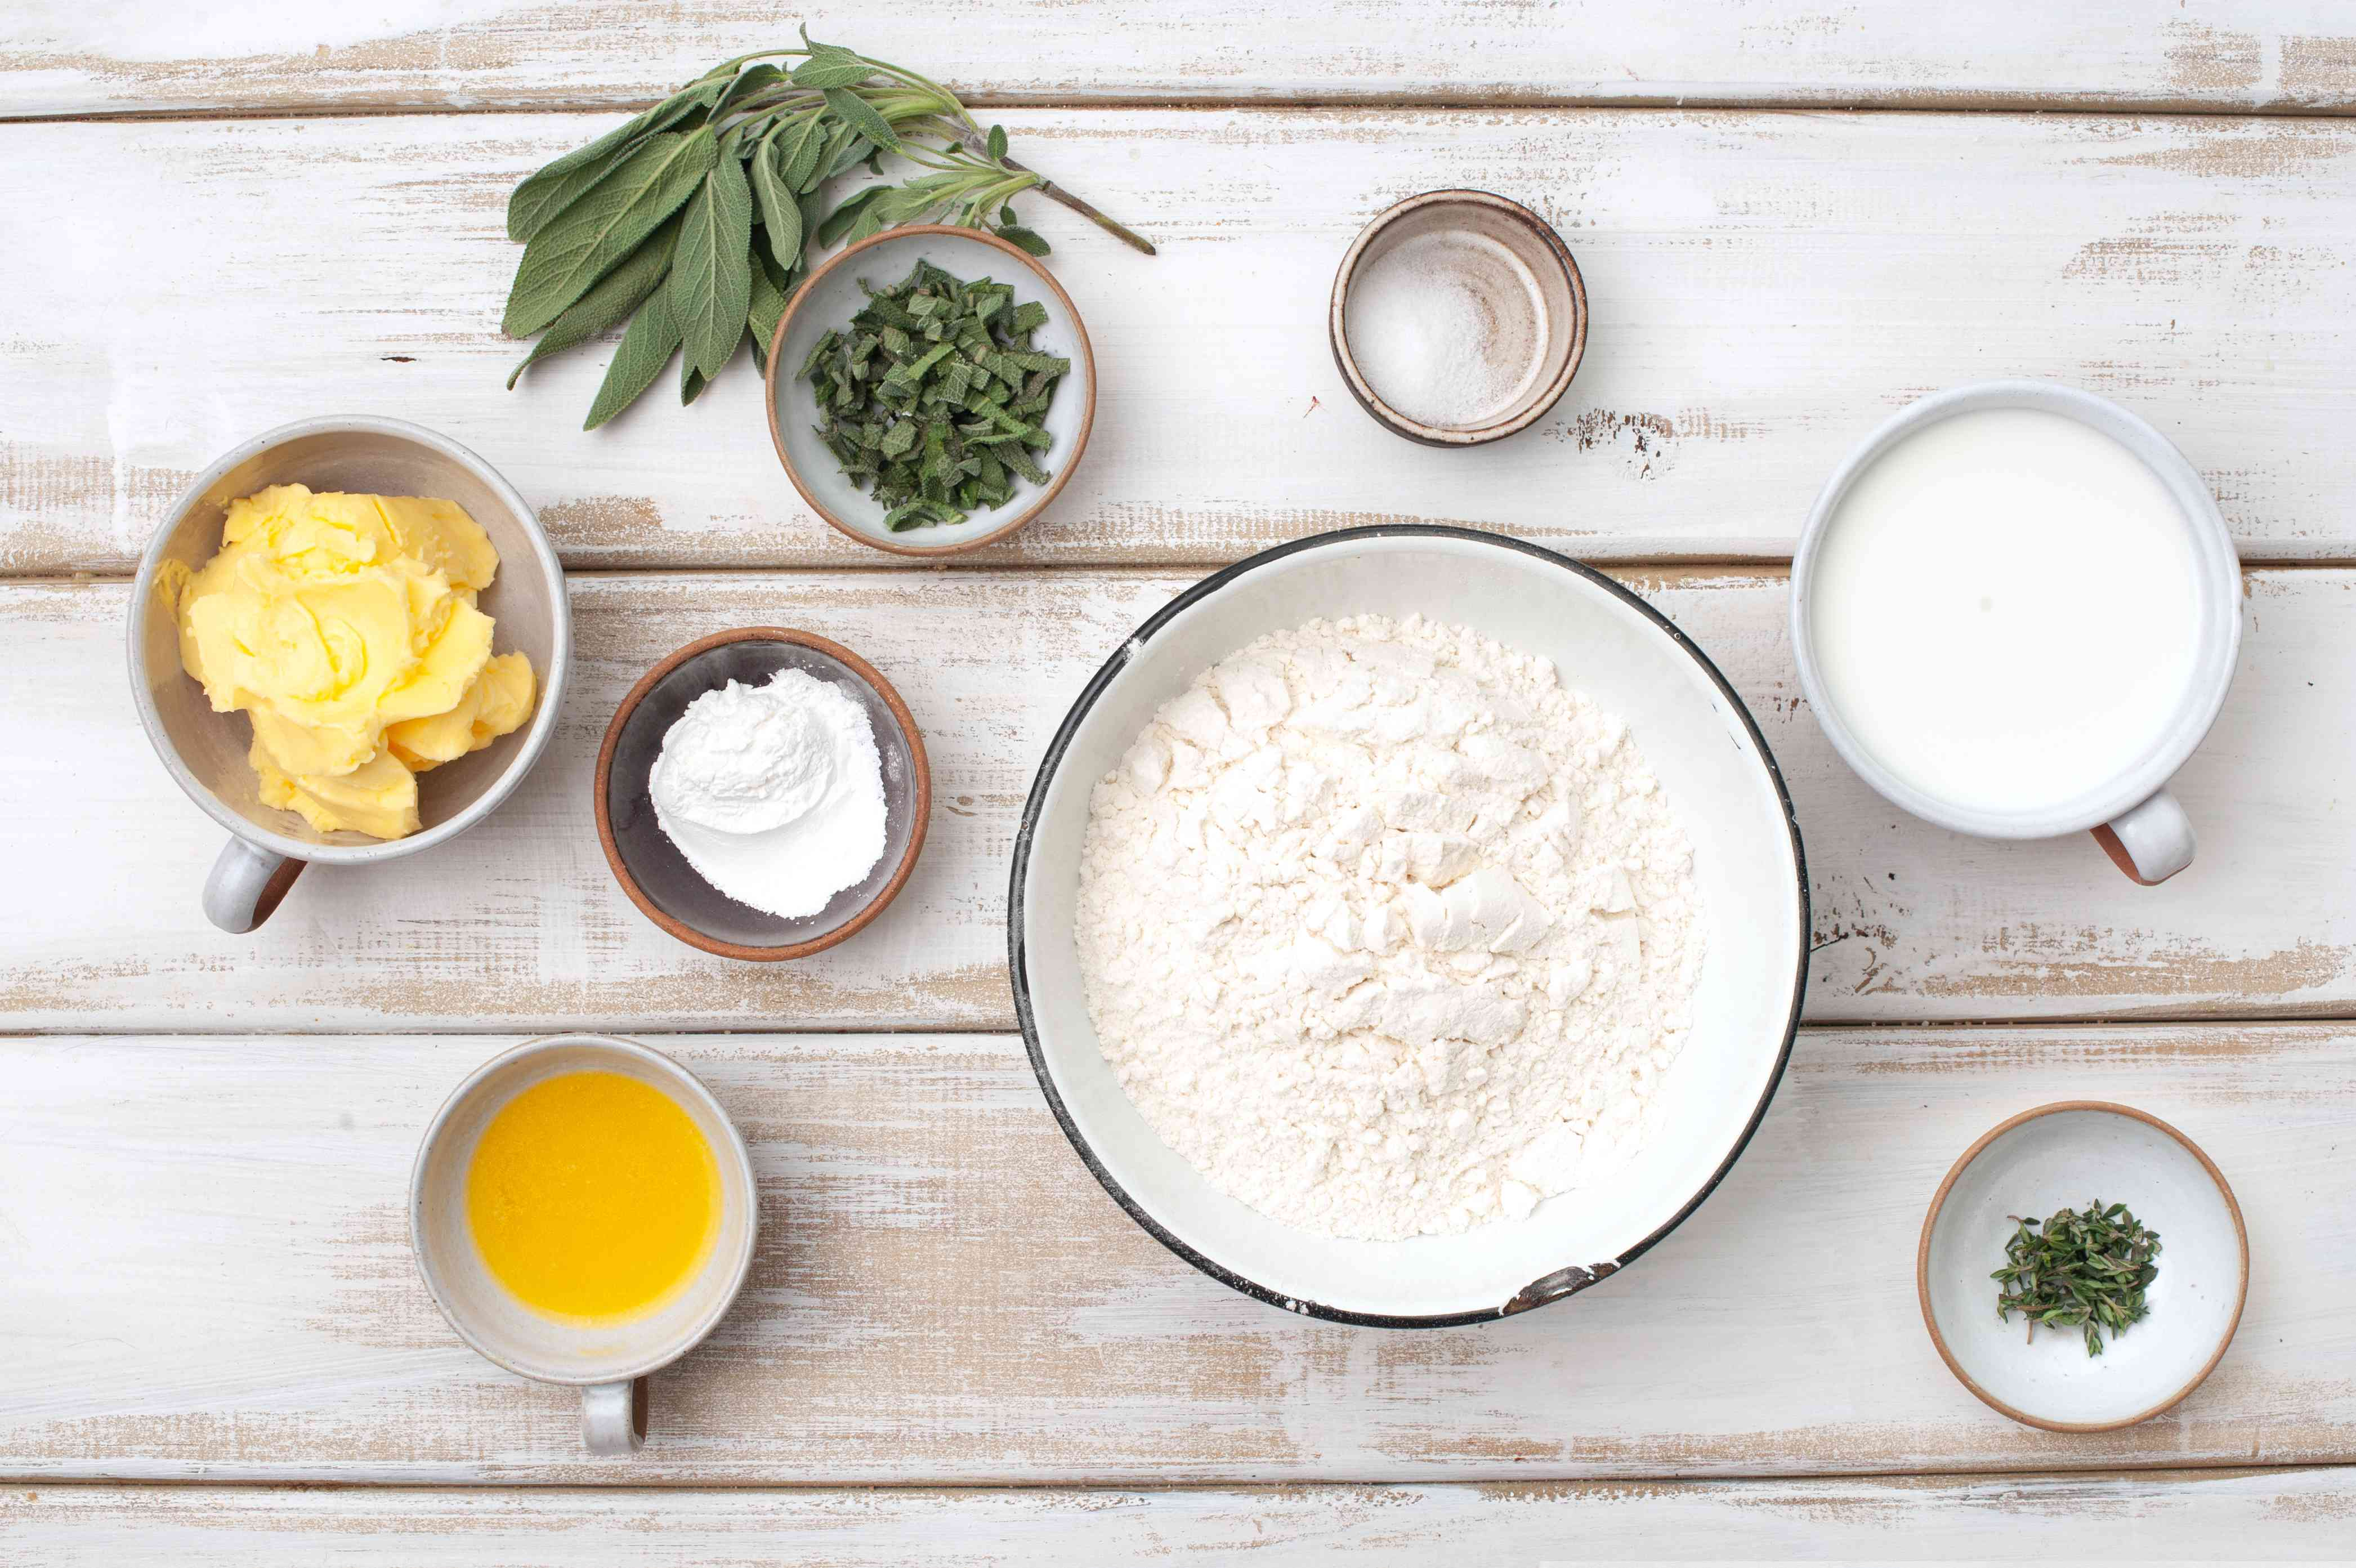 Ingredients for brown butter and sage biscuits